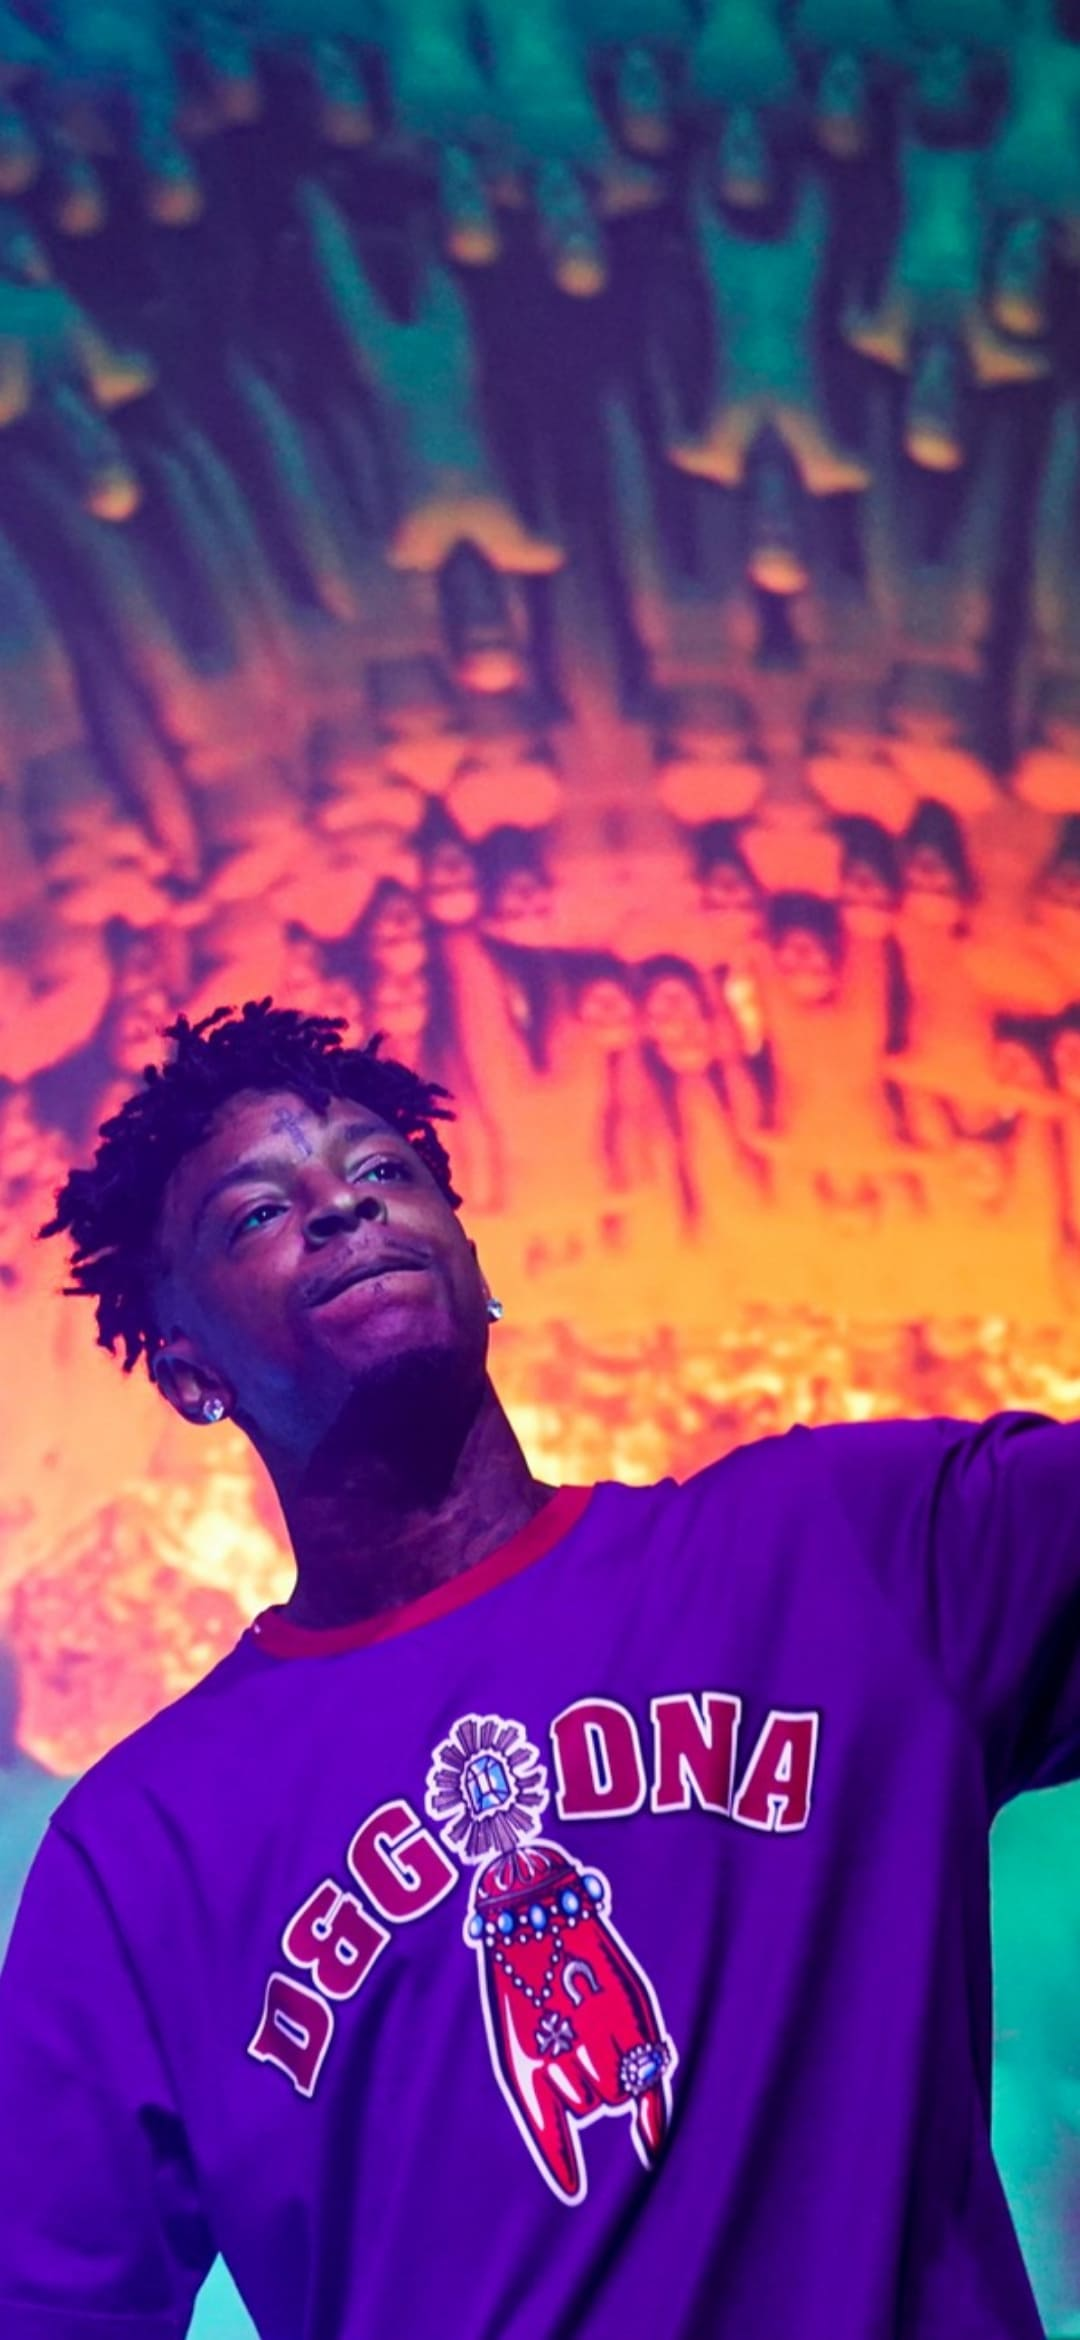 21 savage wallpapers top 4k 21 savage backgrounds download 65 hd 21 savage wallpapers top 4k 21 savage